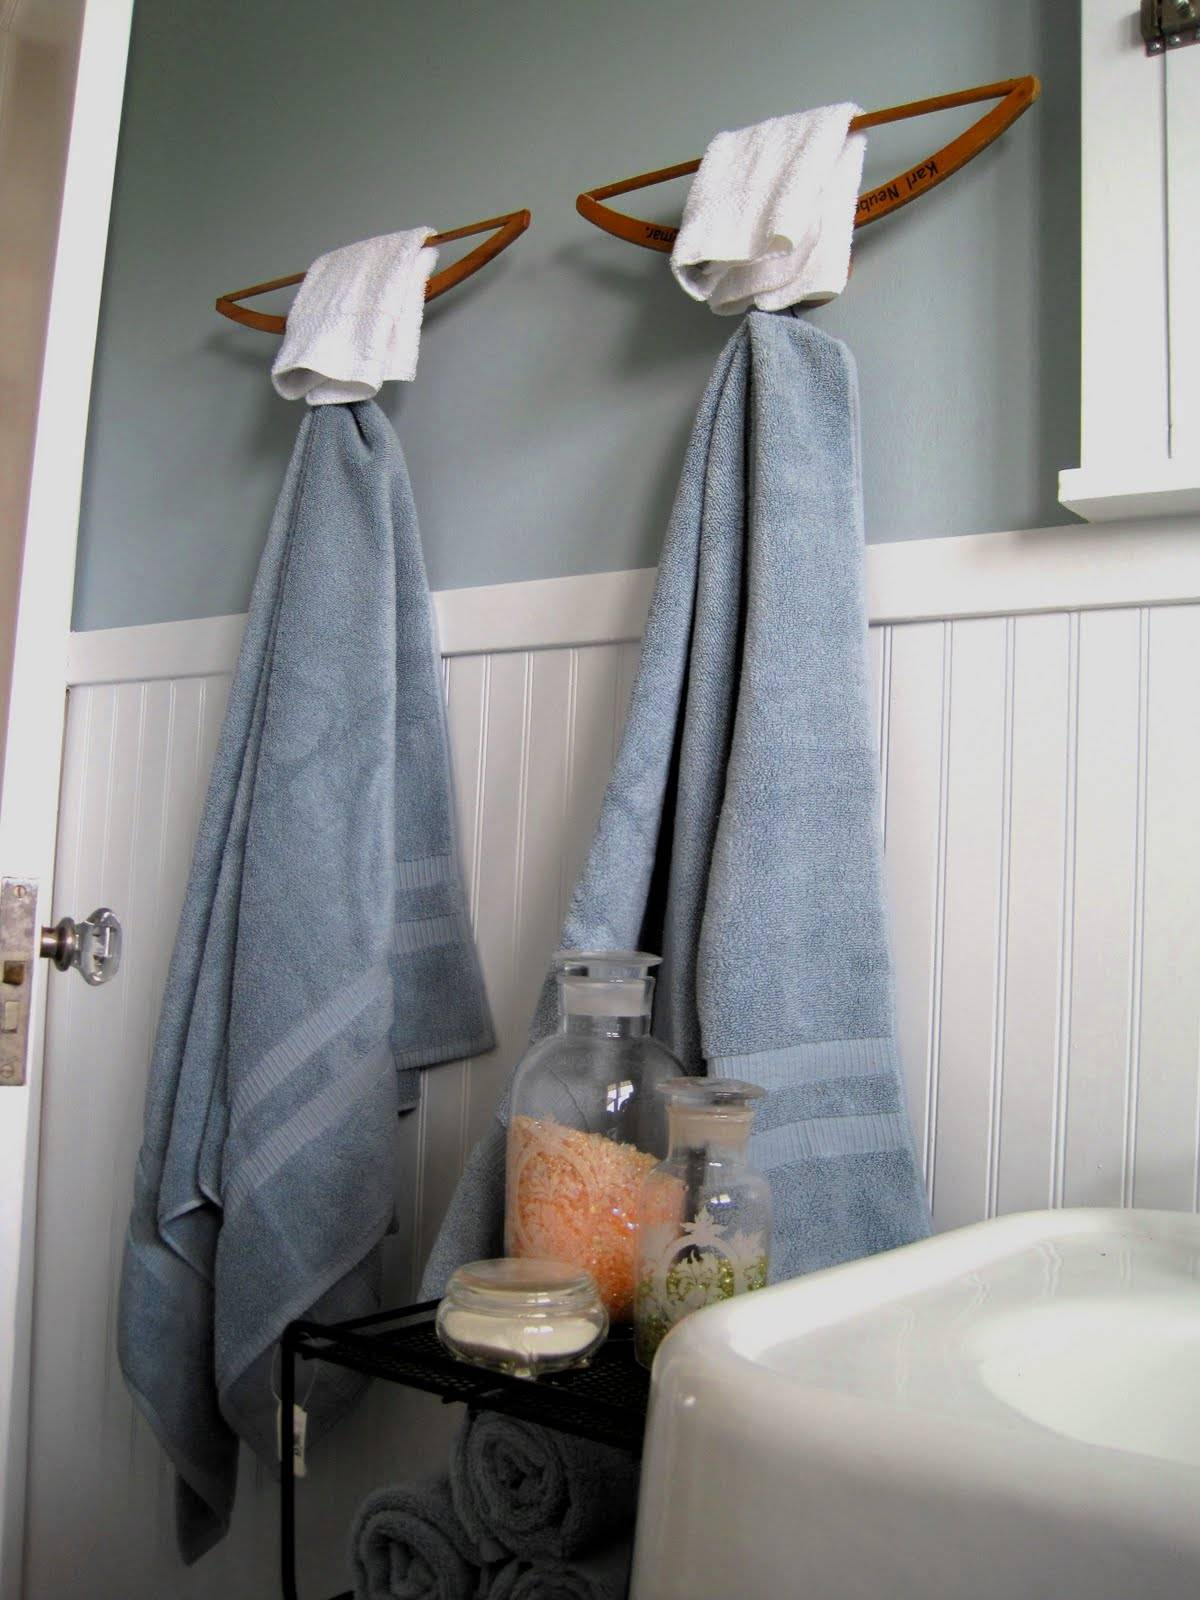 wooden hanger towel racks